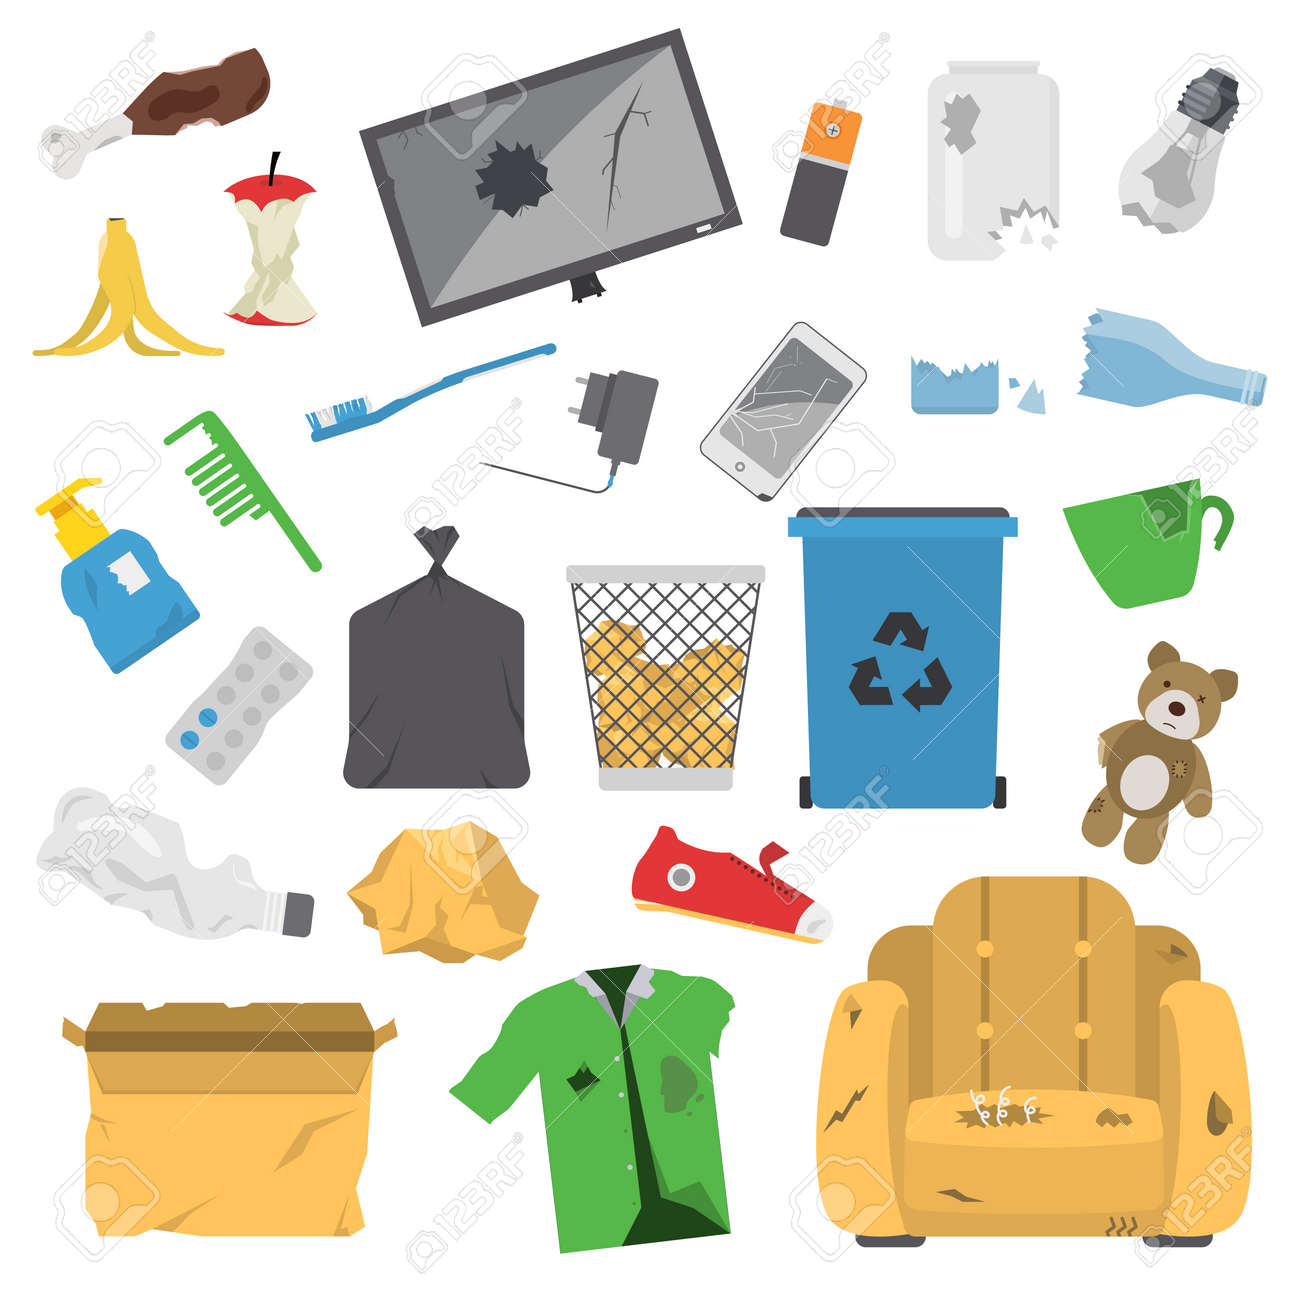 Vector drawings set of waste and garbage for recycling. Container reuse separation household waste garbage icons. Household waste garbage icons garbage trash rubbish recycling ecology environment. - 64705413